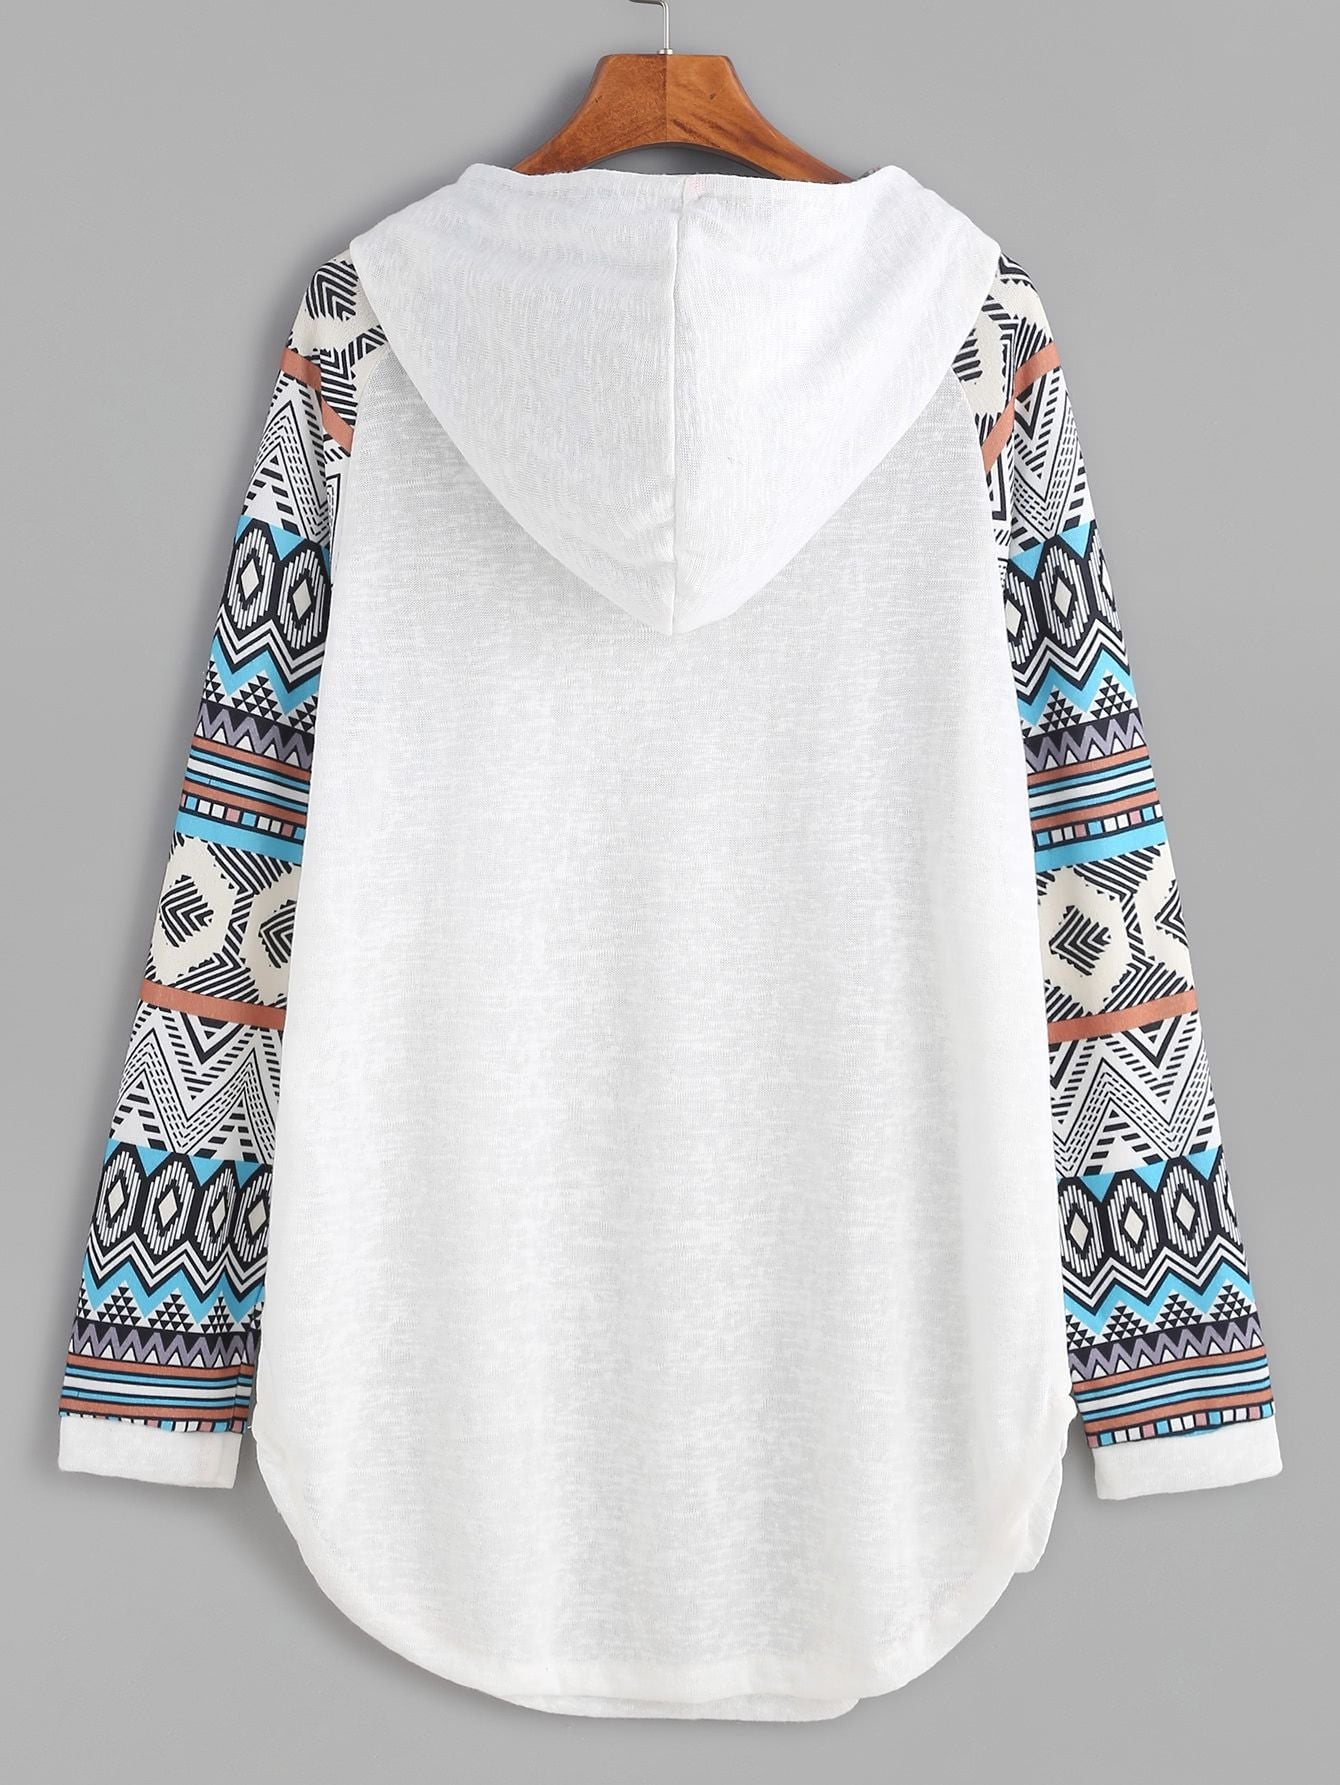 Contrast Raglan Sleeve Curved Hem Hooded Sweatshirt